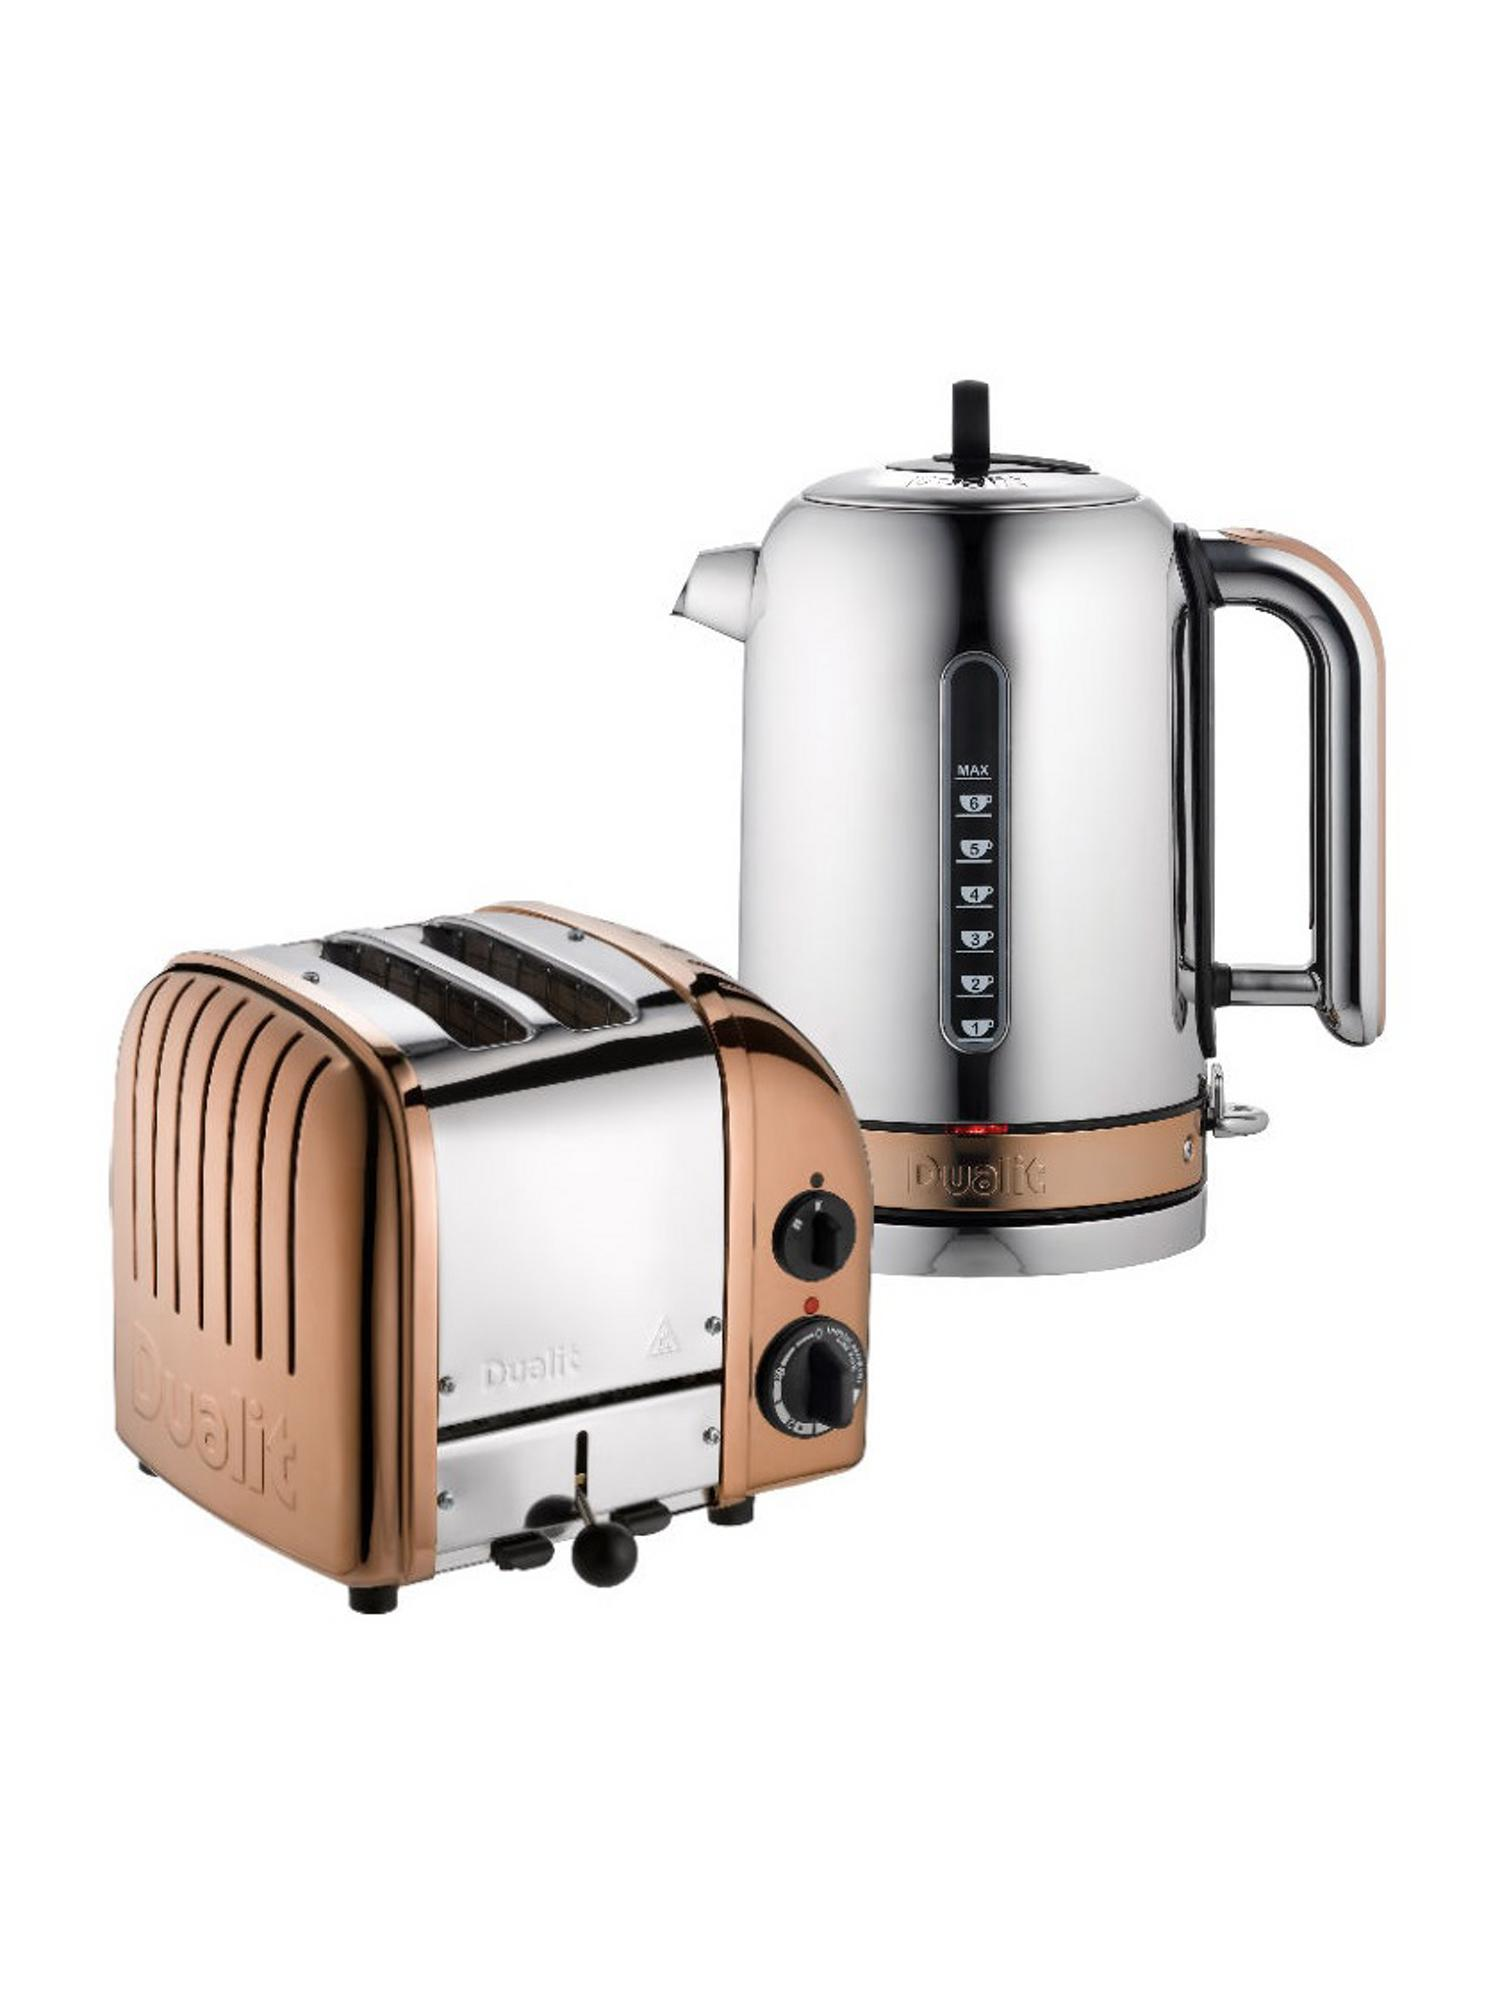 Matching Kitchen Appliances Kitchen Electrical Sets At House Of Fraser